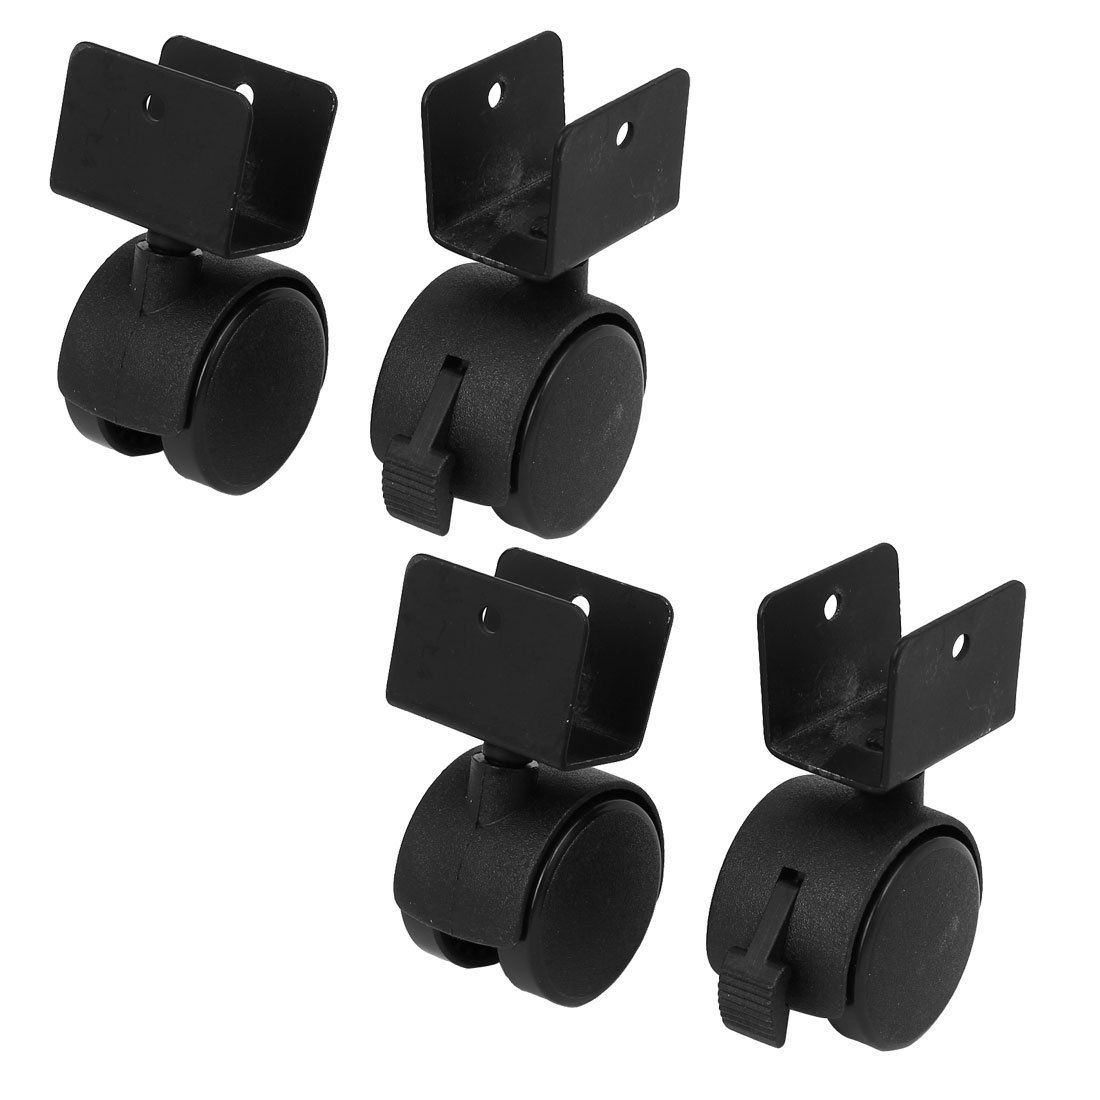 Uxcell A16093000ux0561 1 5 Inch Diameter Wheel U Clamp Top Rotatable Universal Swivel Brake Caster Black 4pcs Pack O Bed Frame Wheels Caster Furniture Casters